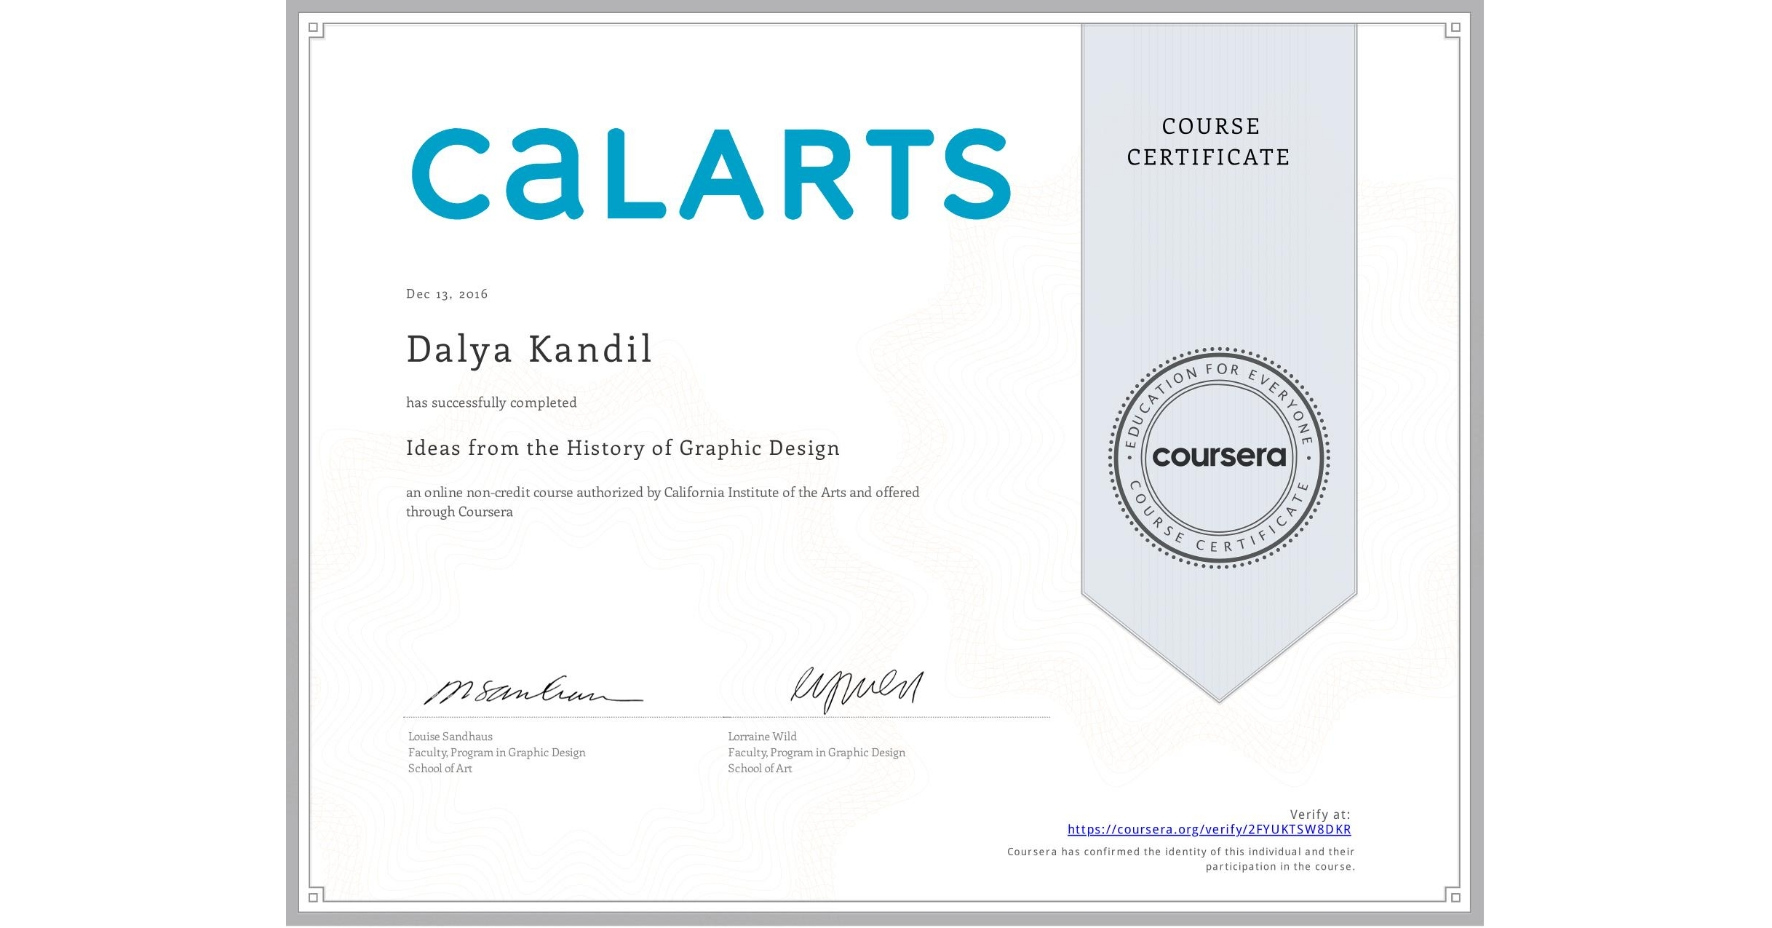 View certificate for Dalya Kandil, Ideas from the History of Graphic Design, an online non-credit course authorized by California Institute of the Arts and offered through Coursera